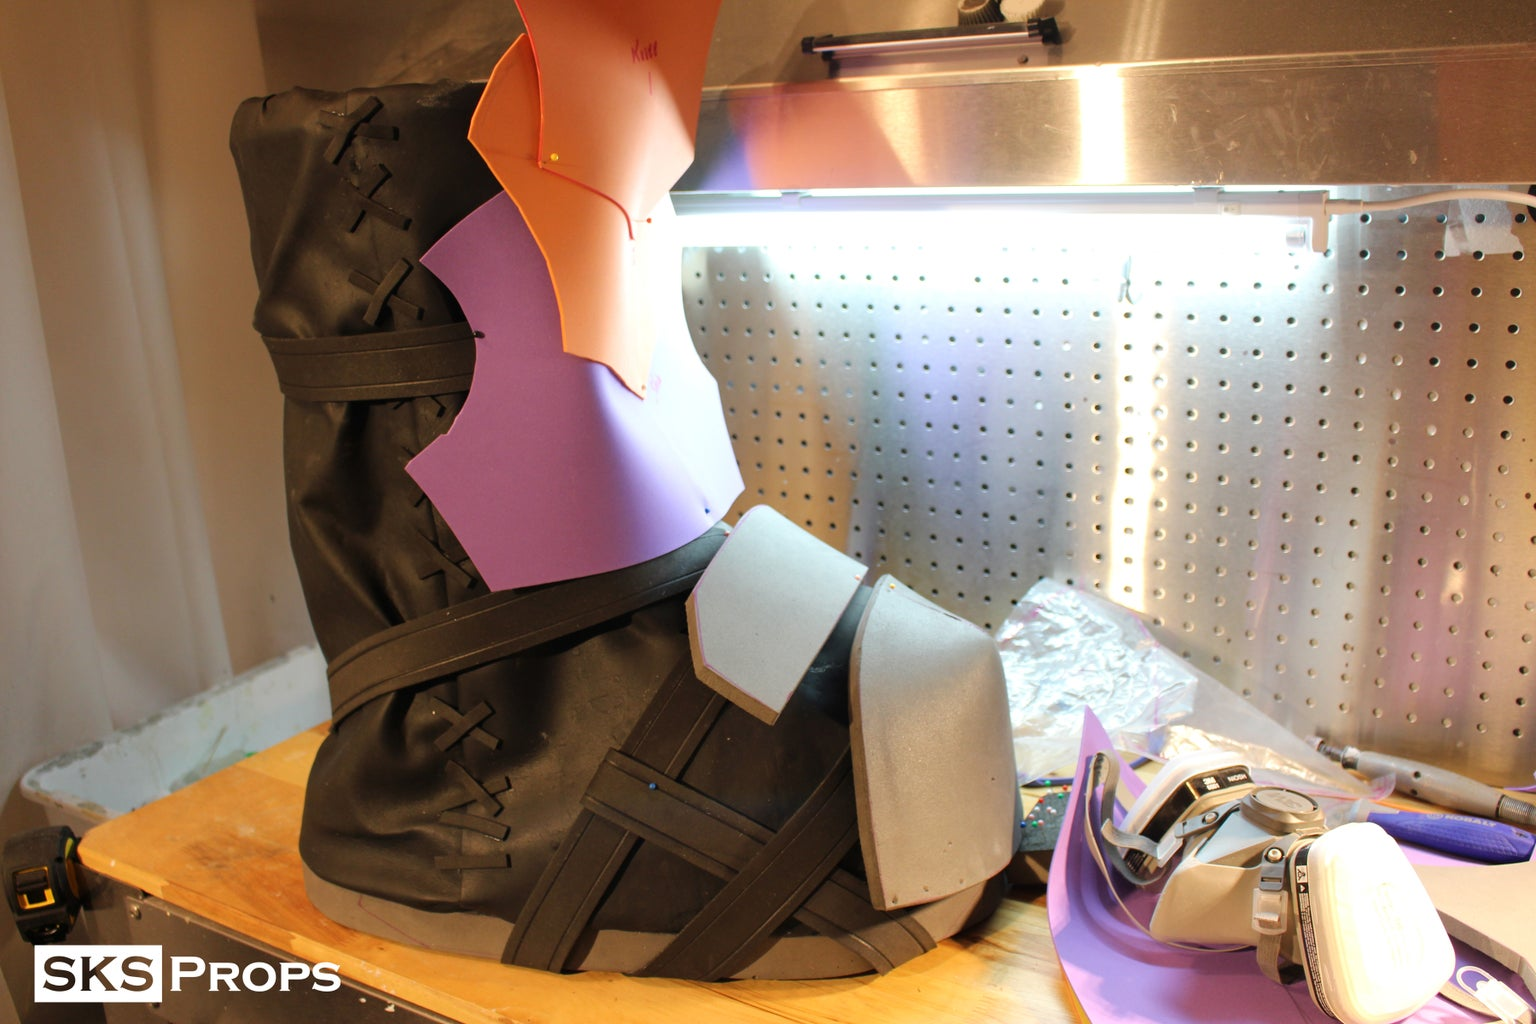 Skinning the Boots and Mocking Up Armor